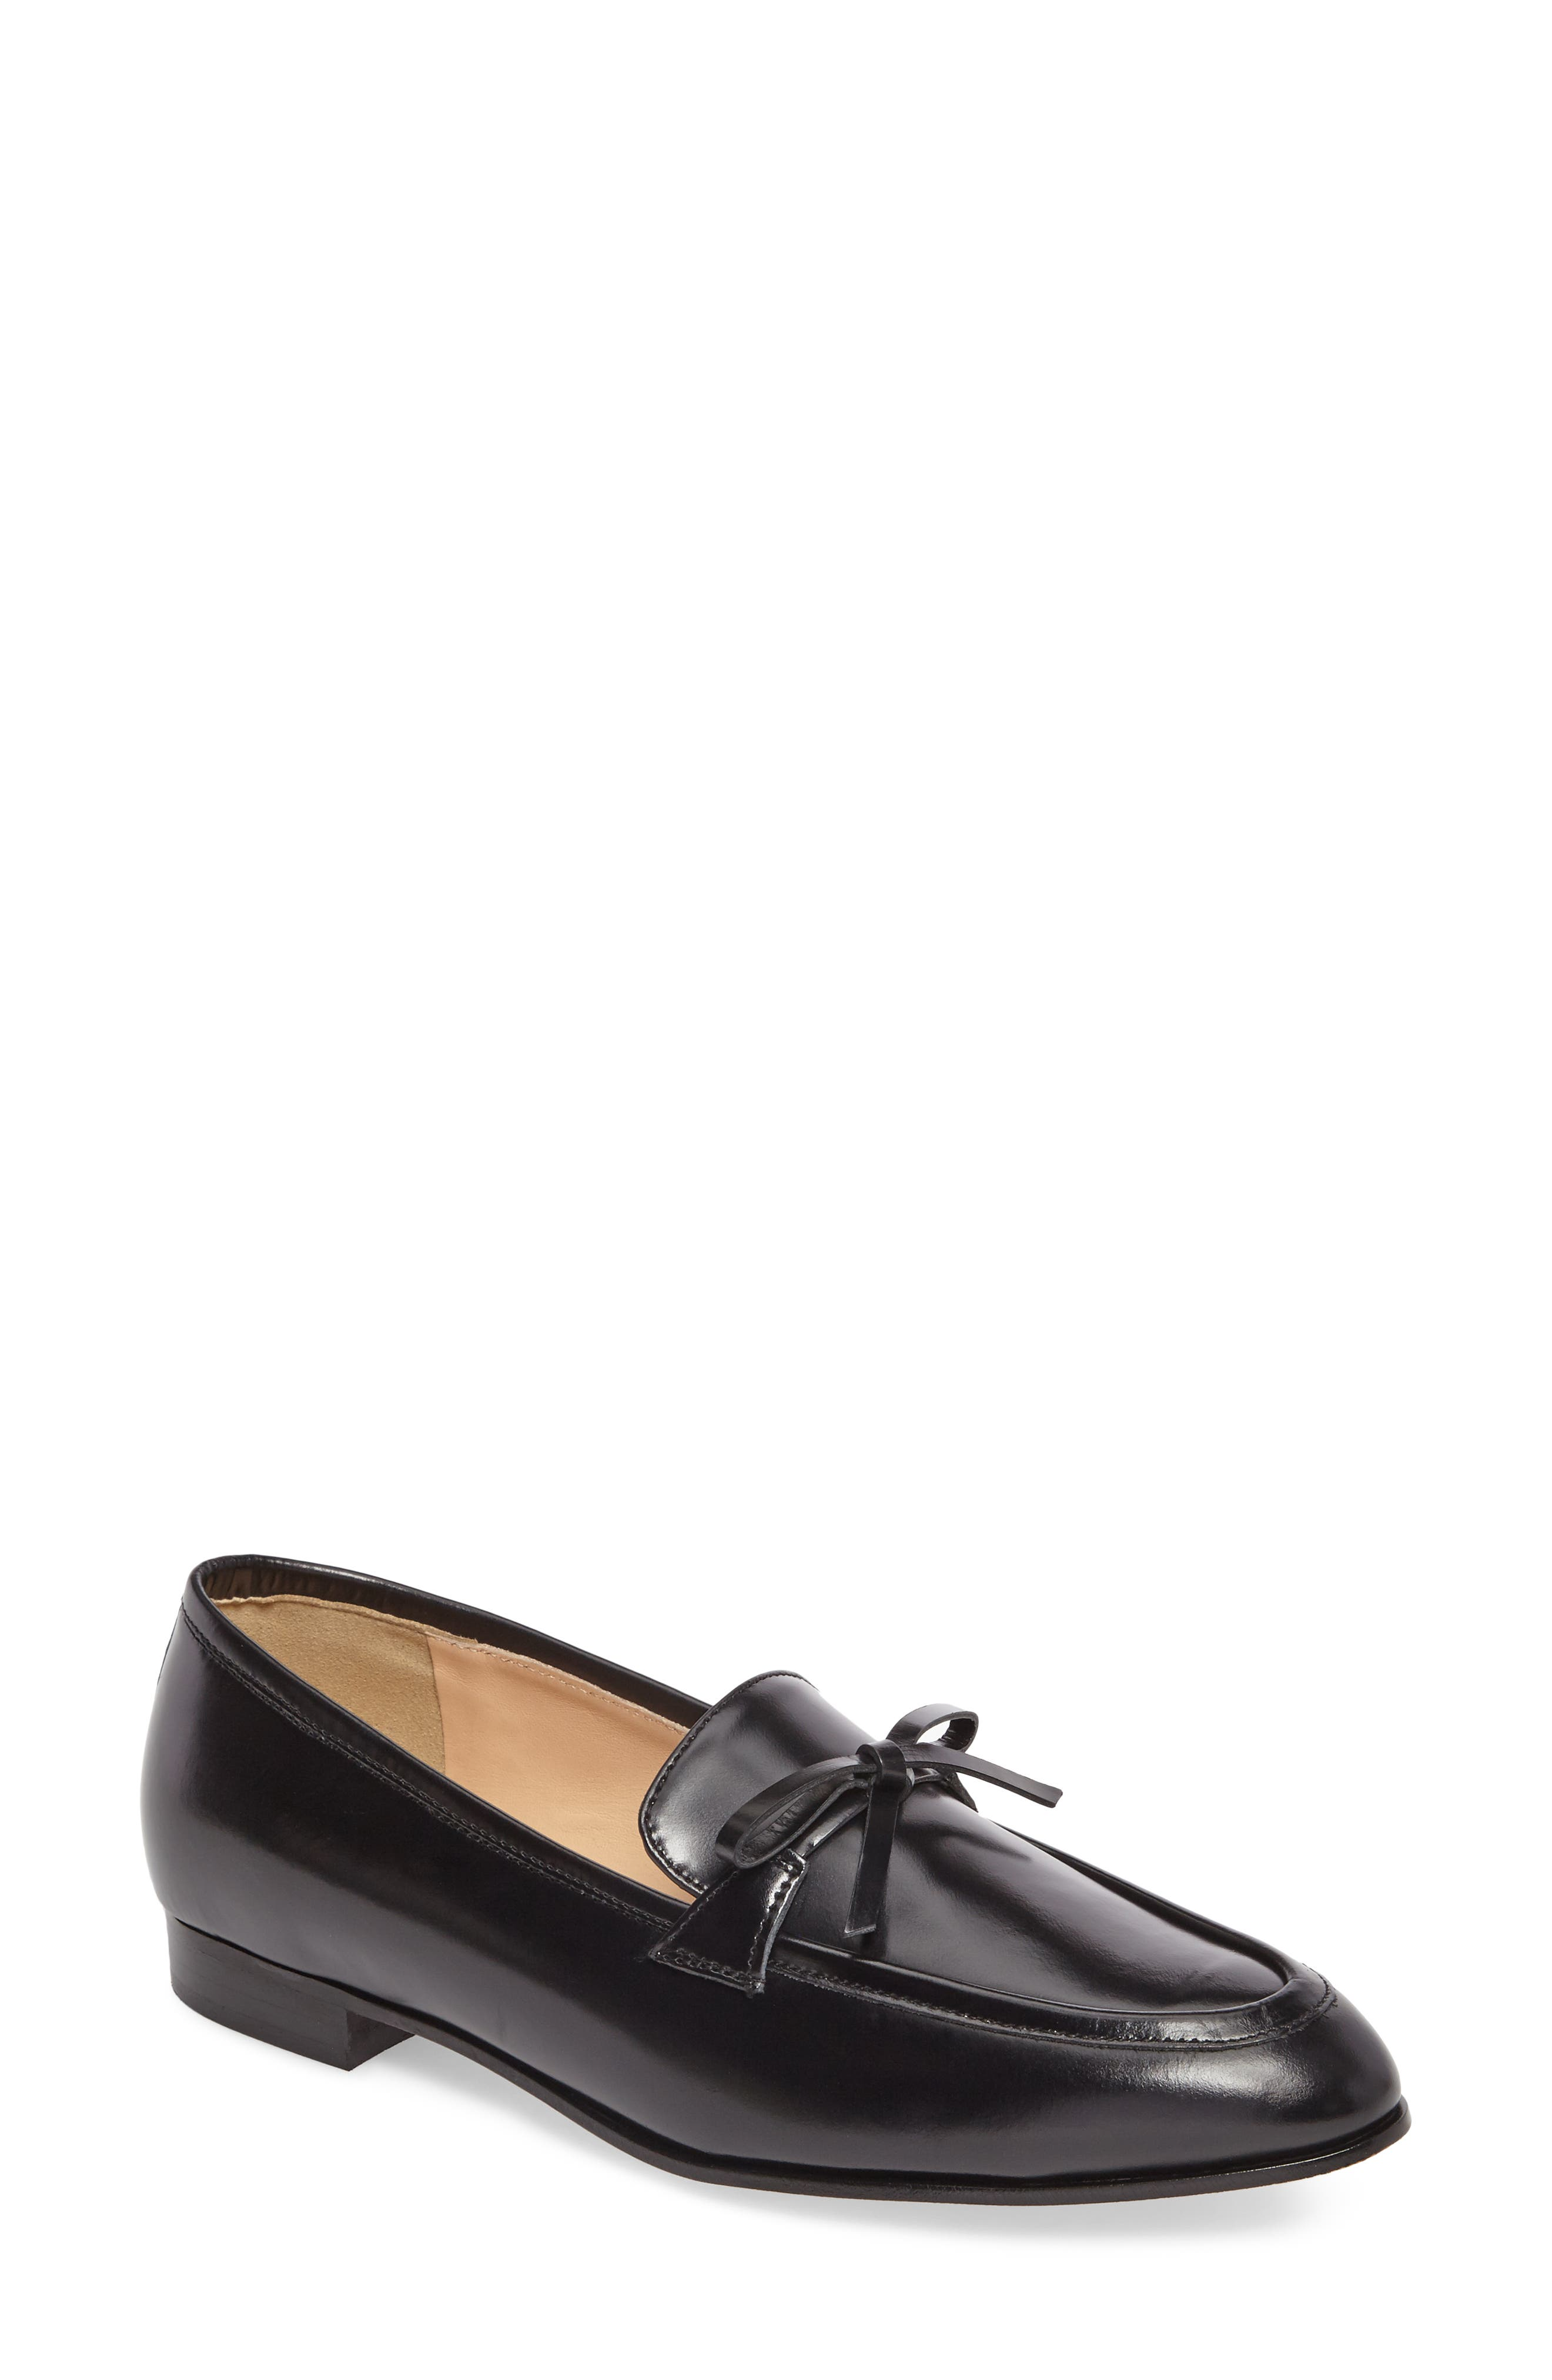 Bow Loafer,                         Main,                         color, 001